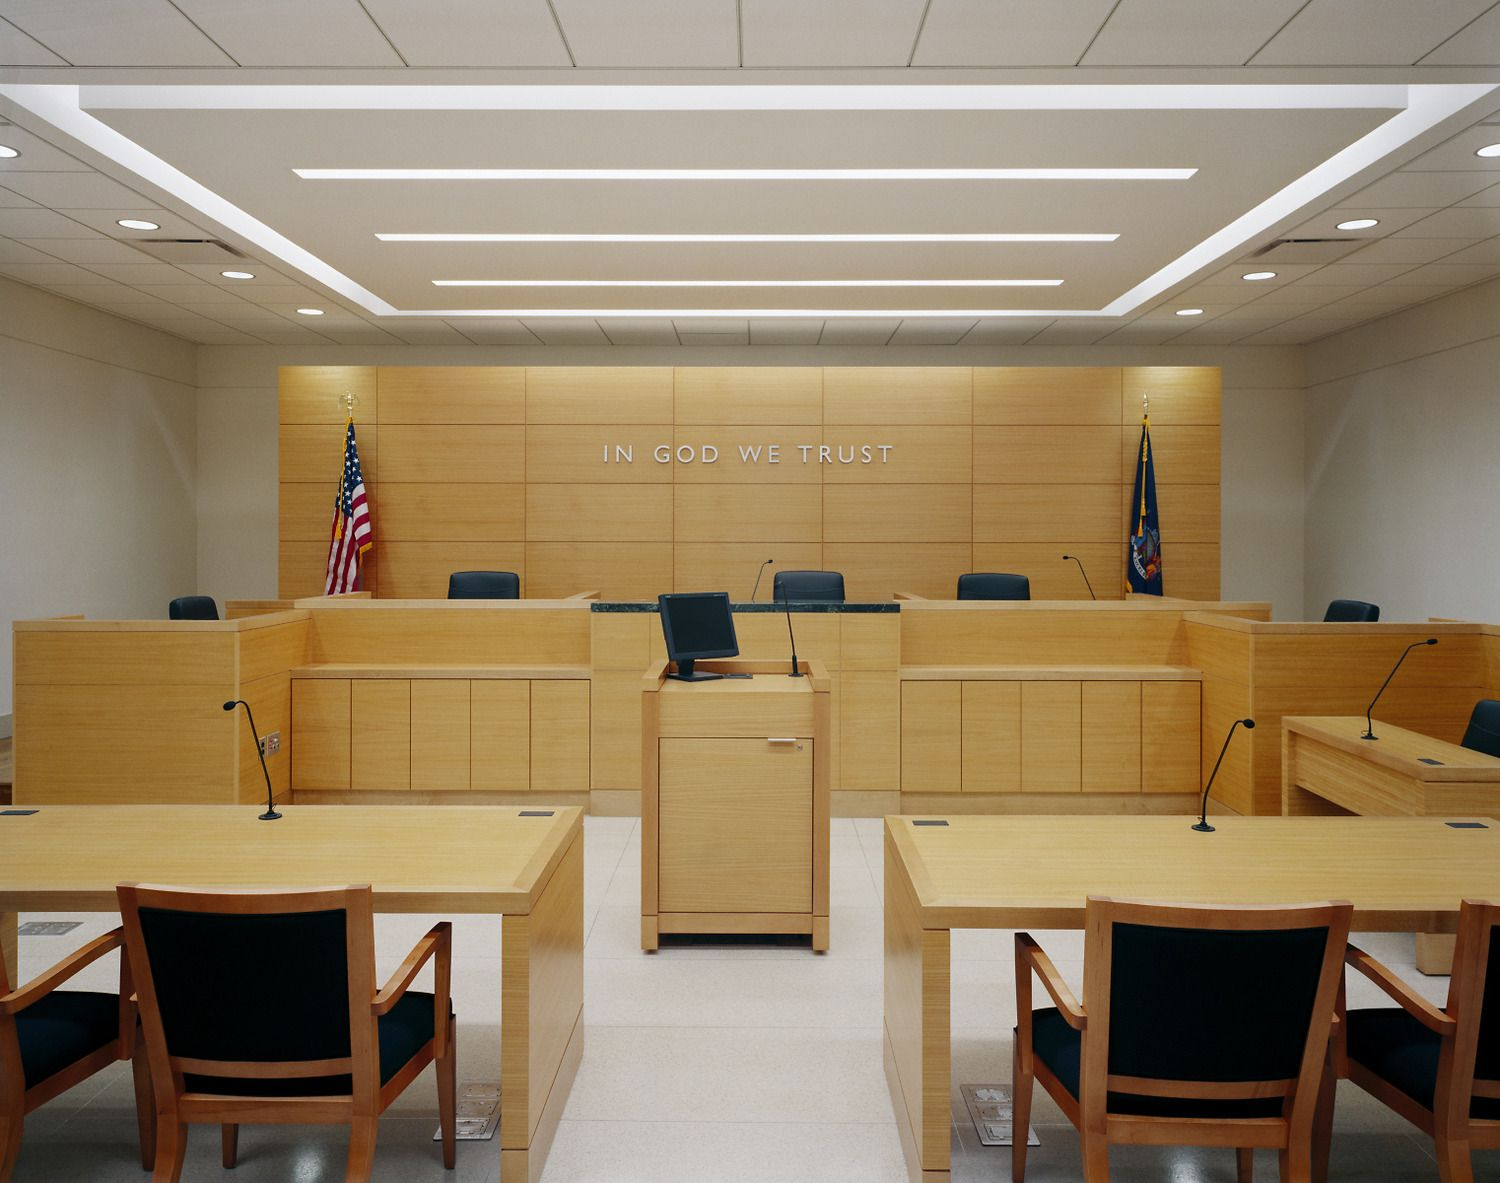 County Courthouse Interior Google Search Courtrooms Traditional Pinterest Interiors